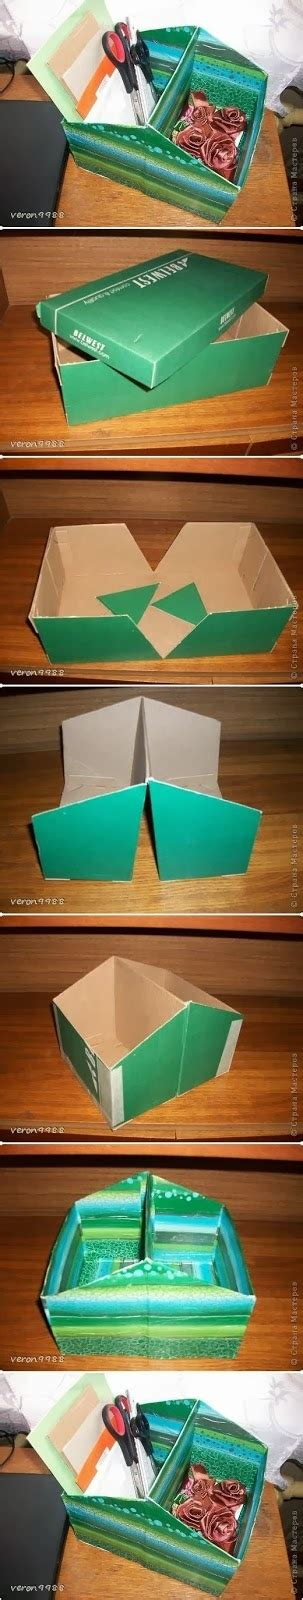 shoe box storage diy diy craft storage box pictures photos and images for